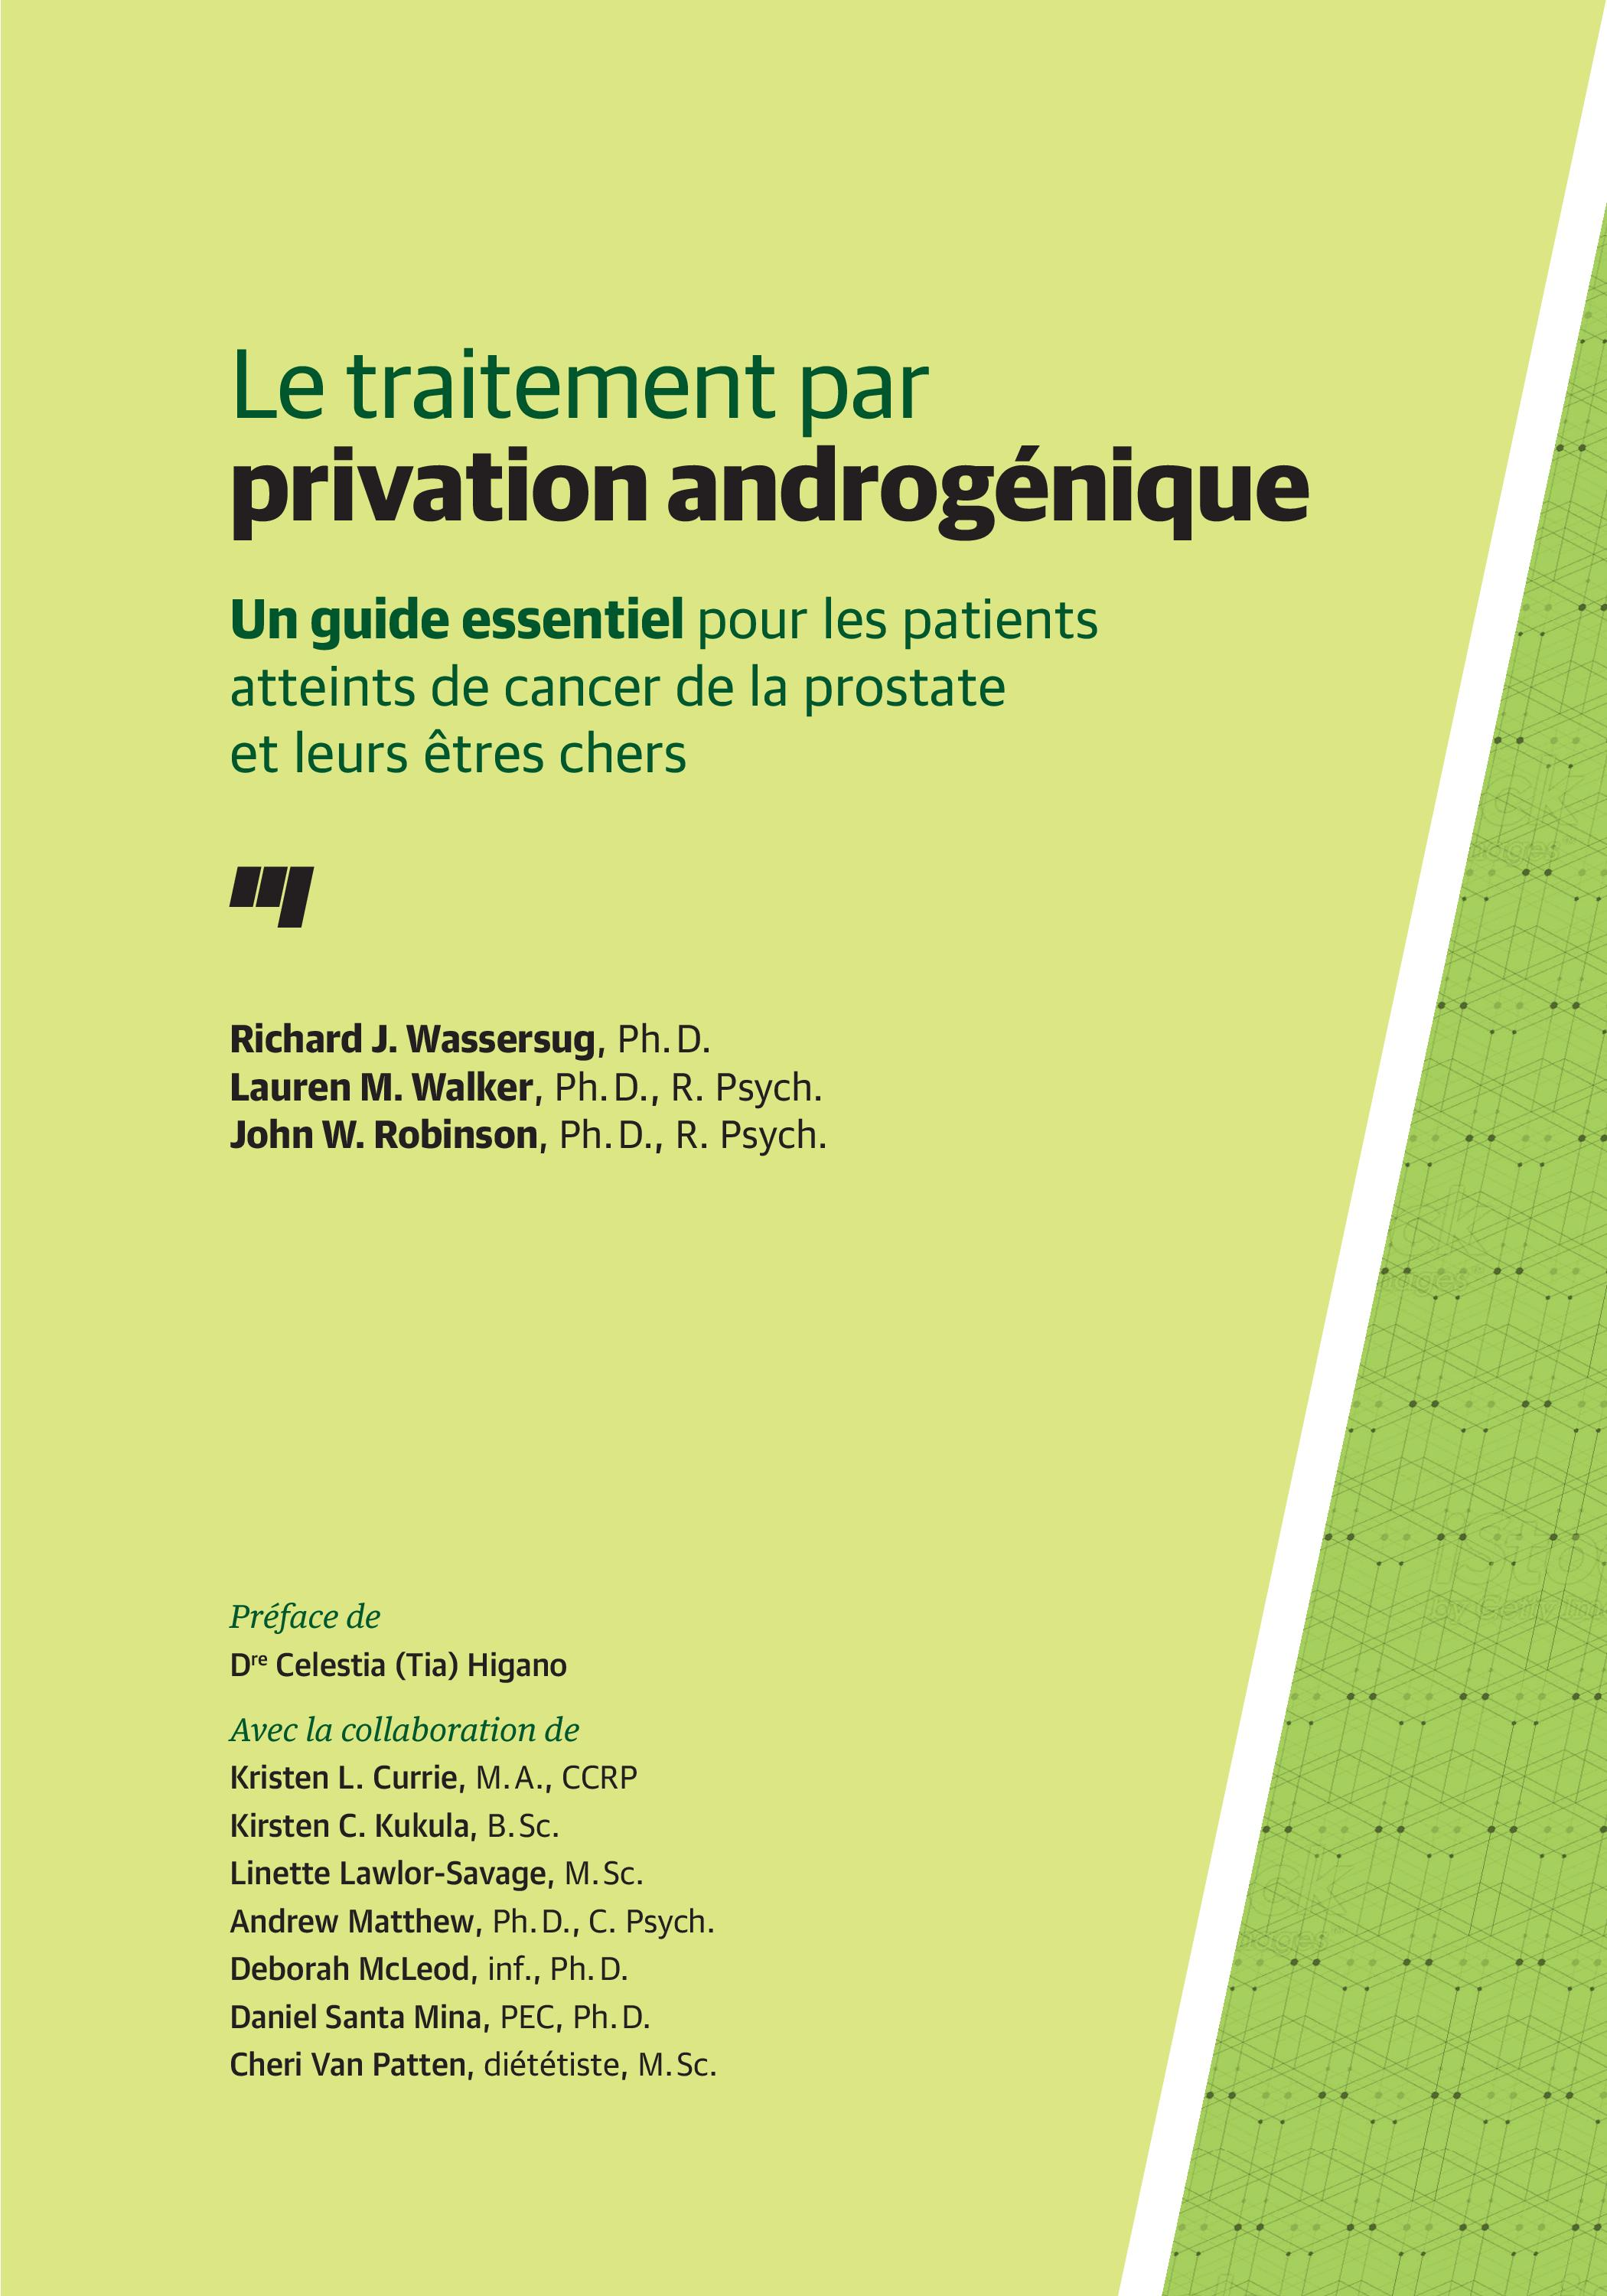 Vignette du livre Le traitement par privation androgénique - Richard J. Wassersug, Lauren M. Walker, John W. Robinson, Celestia Higano